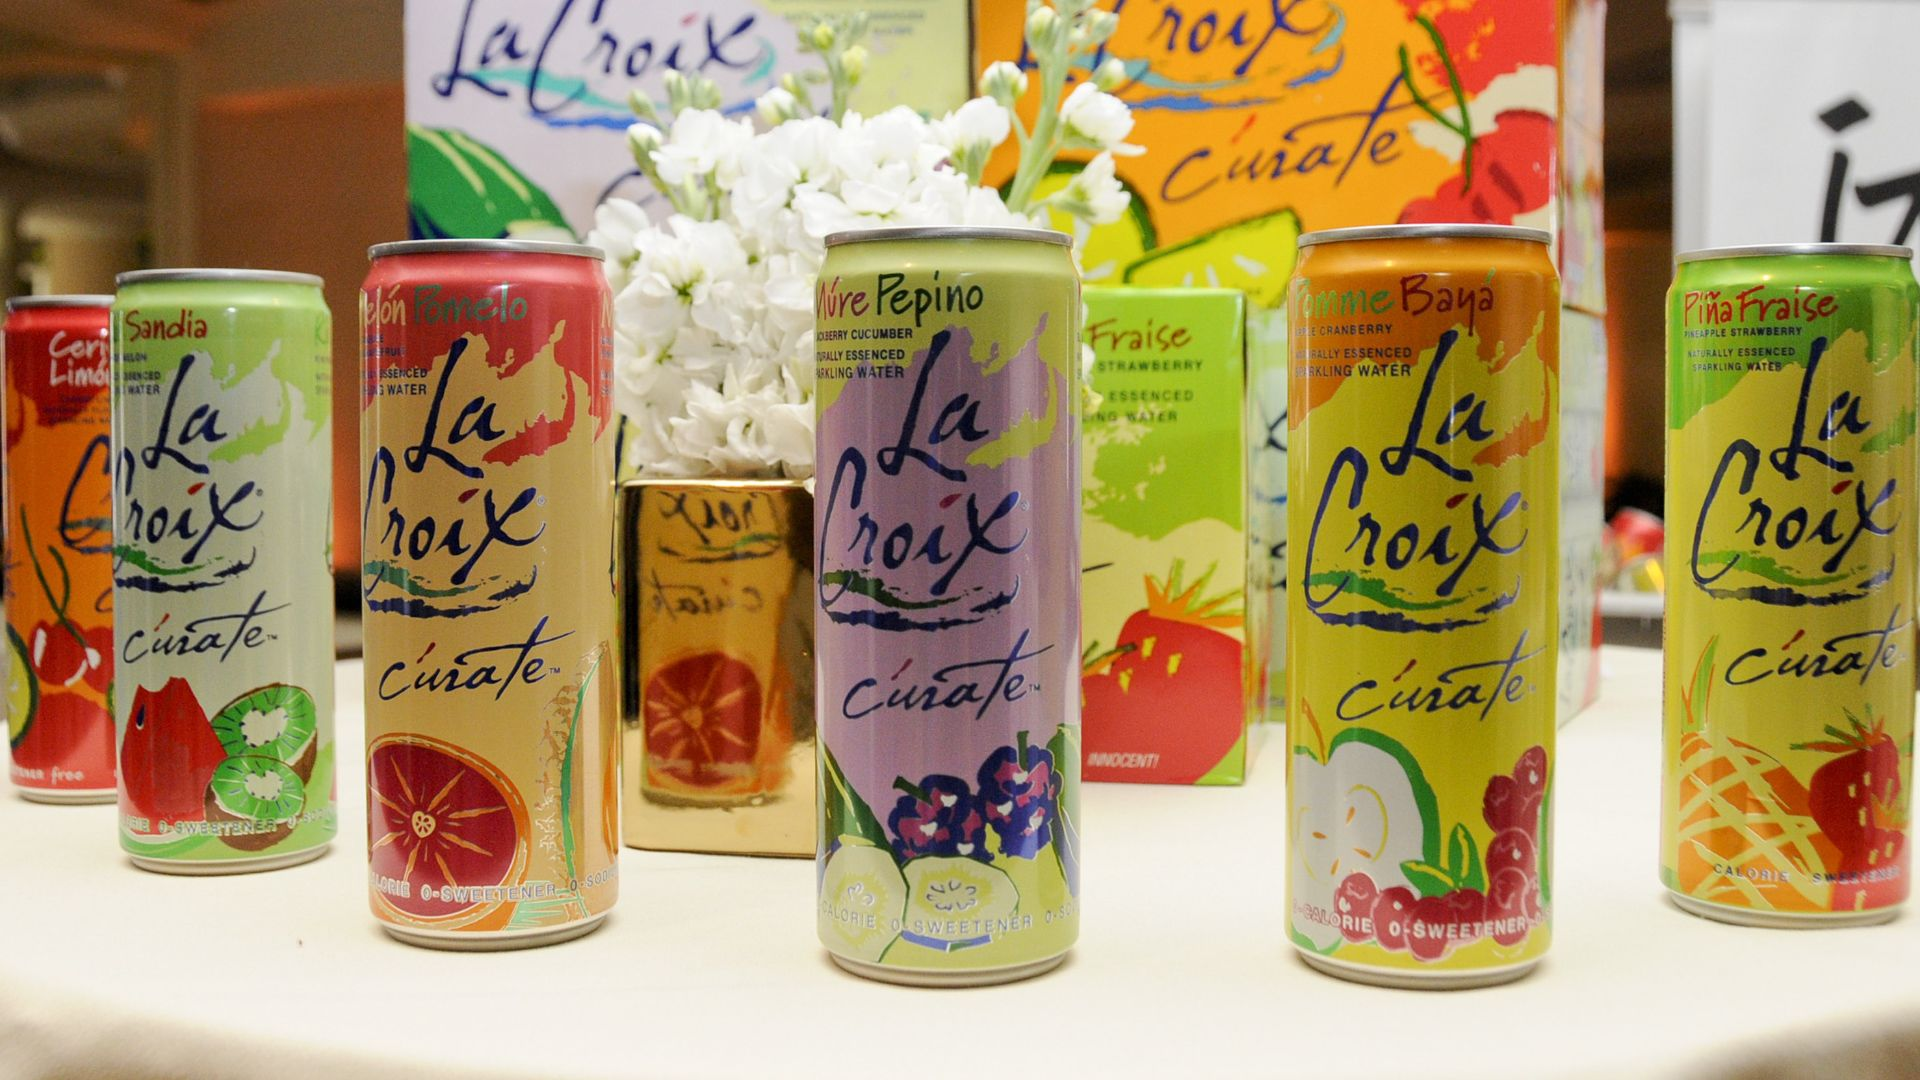 LaCroix faces suit alleging it mislabeled sparkling water as natural 1920x1080